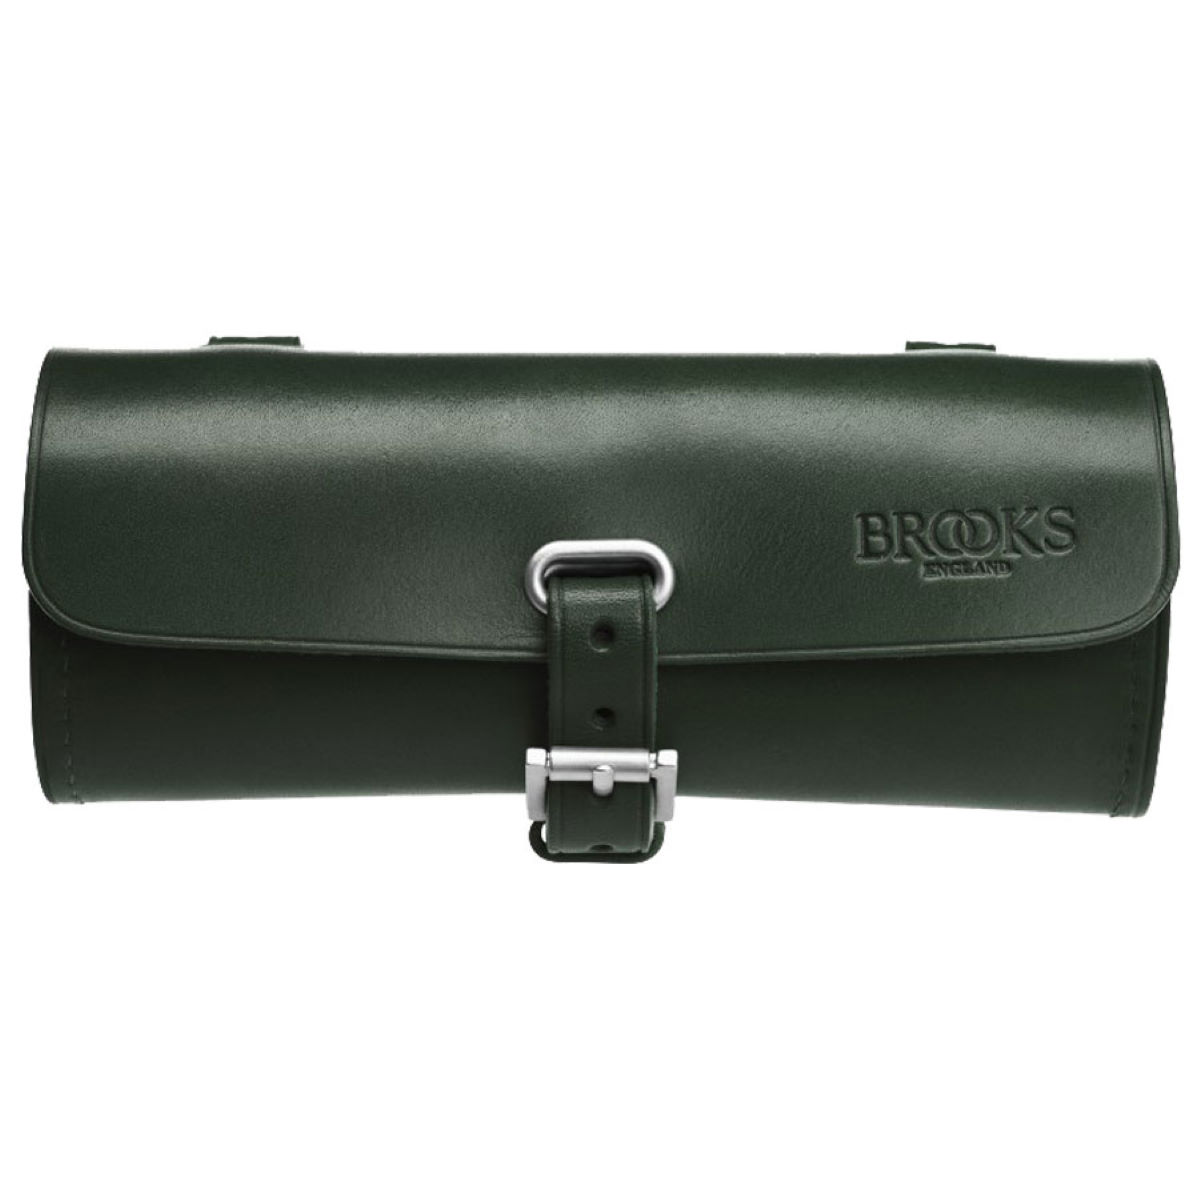 Brooks England Challenge Tool Saddle Bag   Saddle Bags